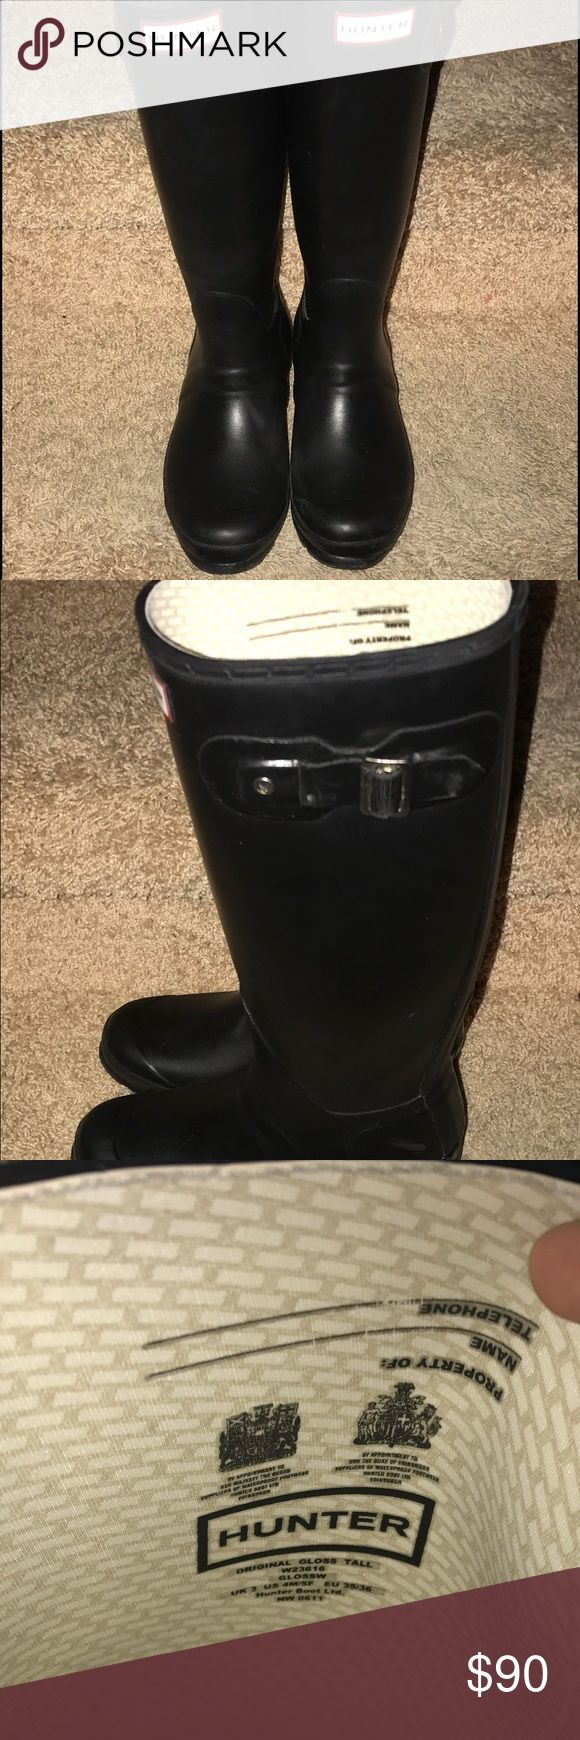 Women's Hunter tall original boots Black Excellent condition. Just one size too small. Size 5 women's. Tall black original welly boot. Hunter Boots Shoes Winter & Rain Boots